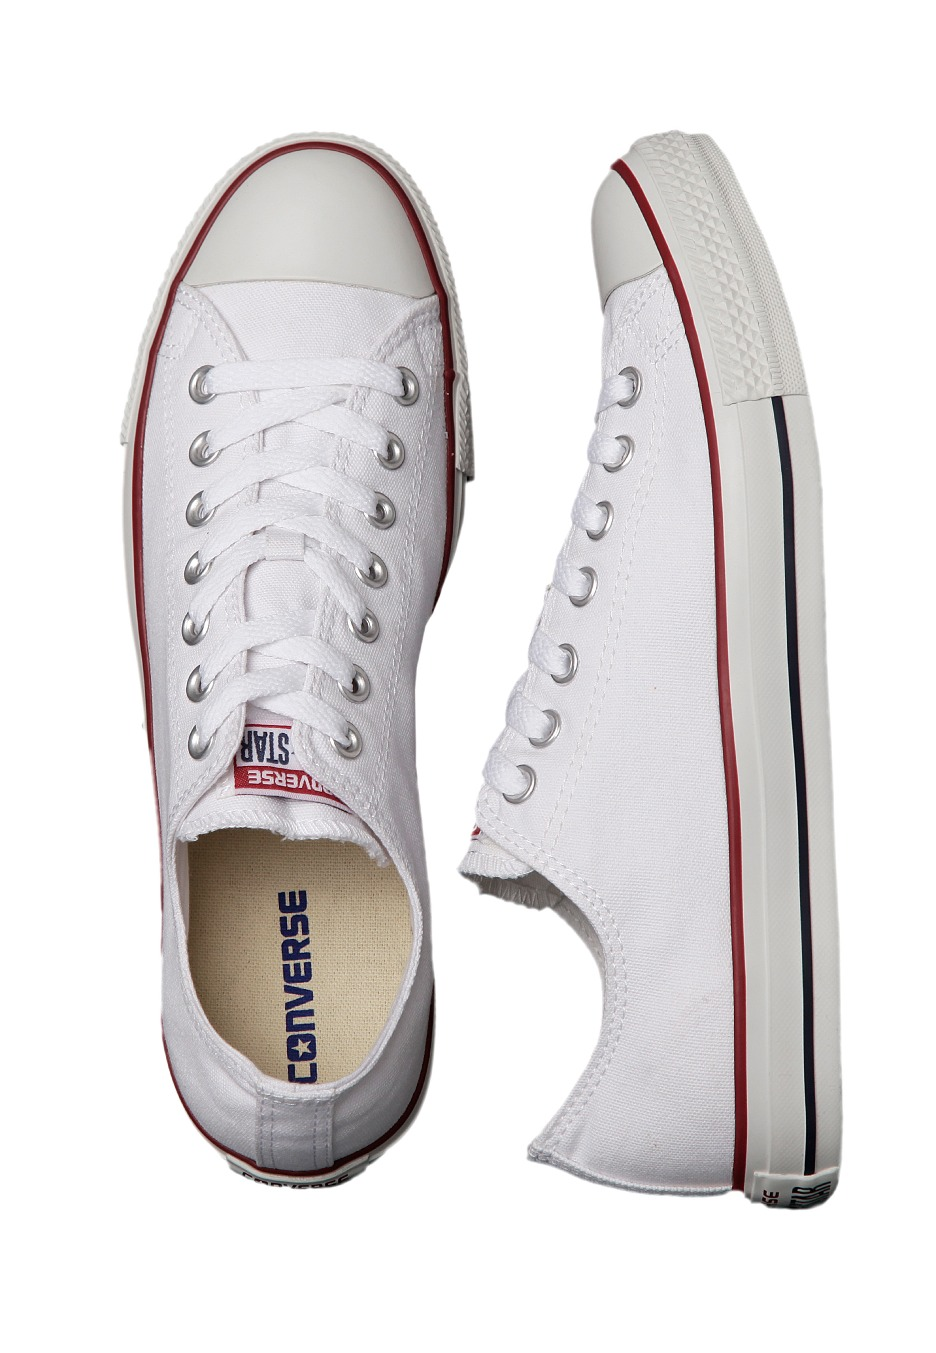 Converse Chuck Taylor All Star Ox Optical White Shoes